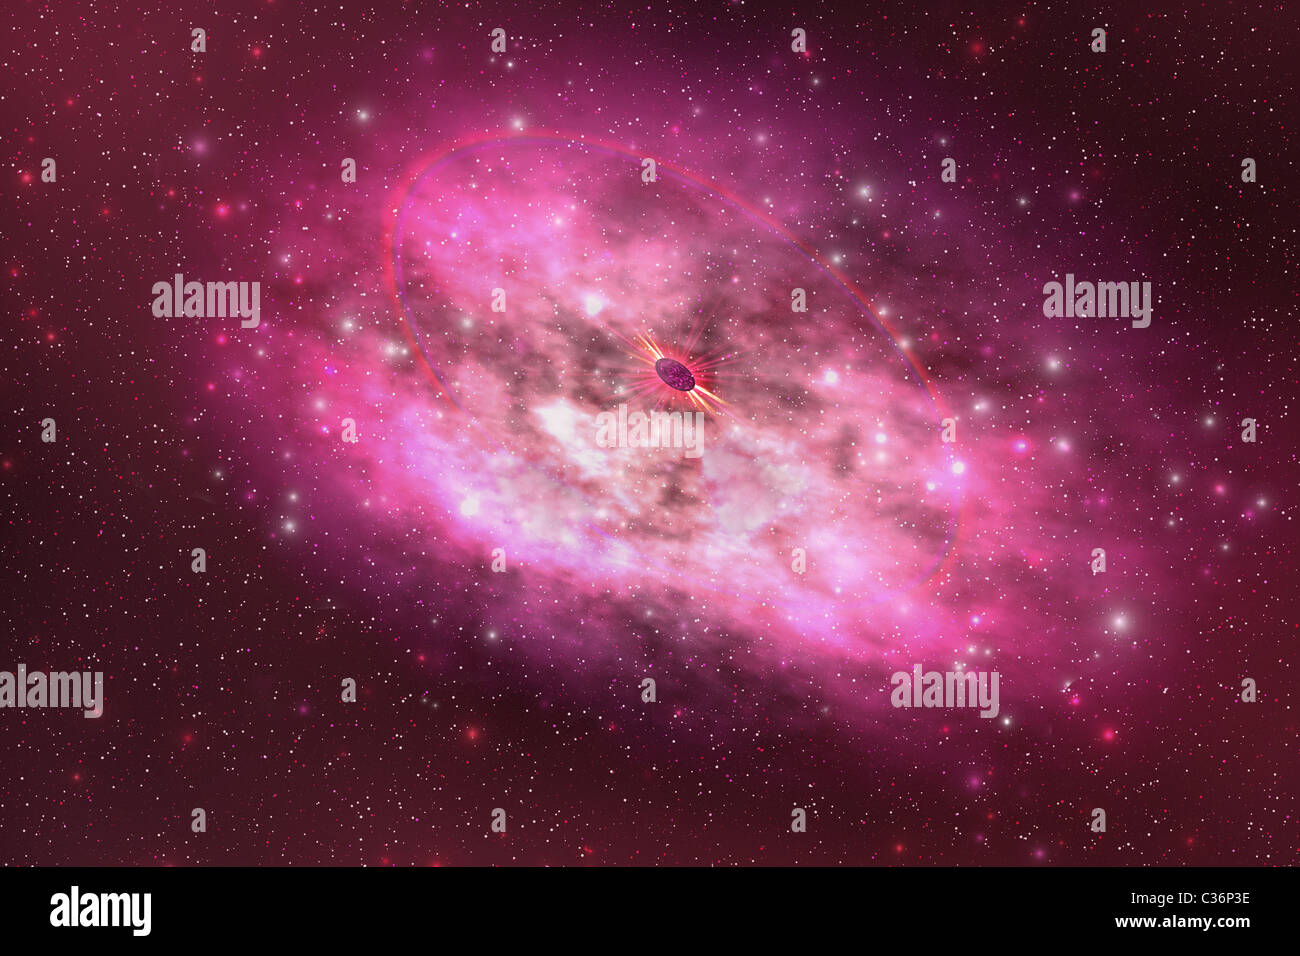 A huge nebula contains millions of stars and planets. Stock Photo